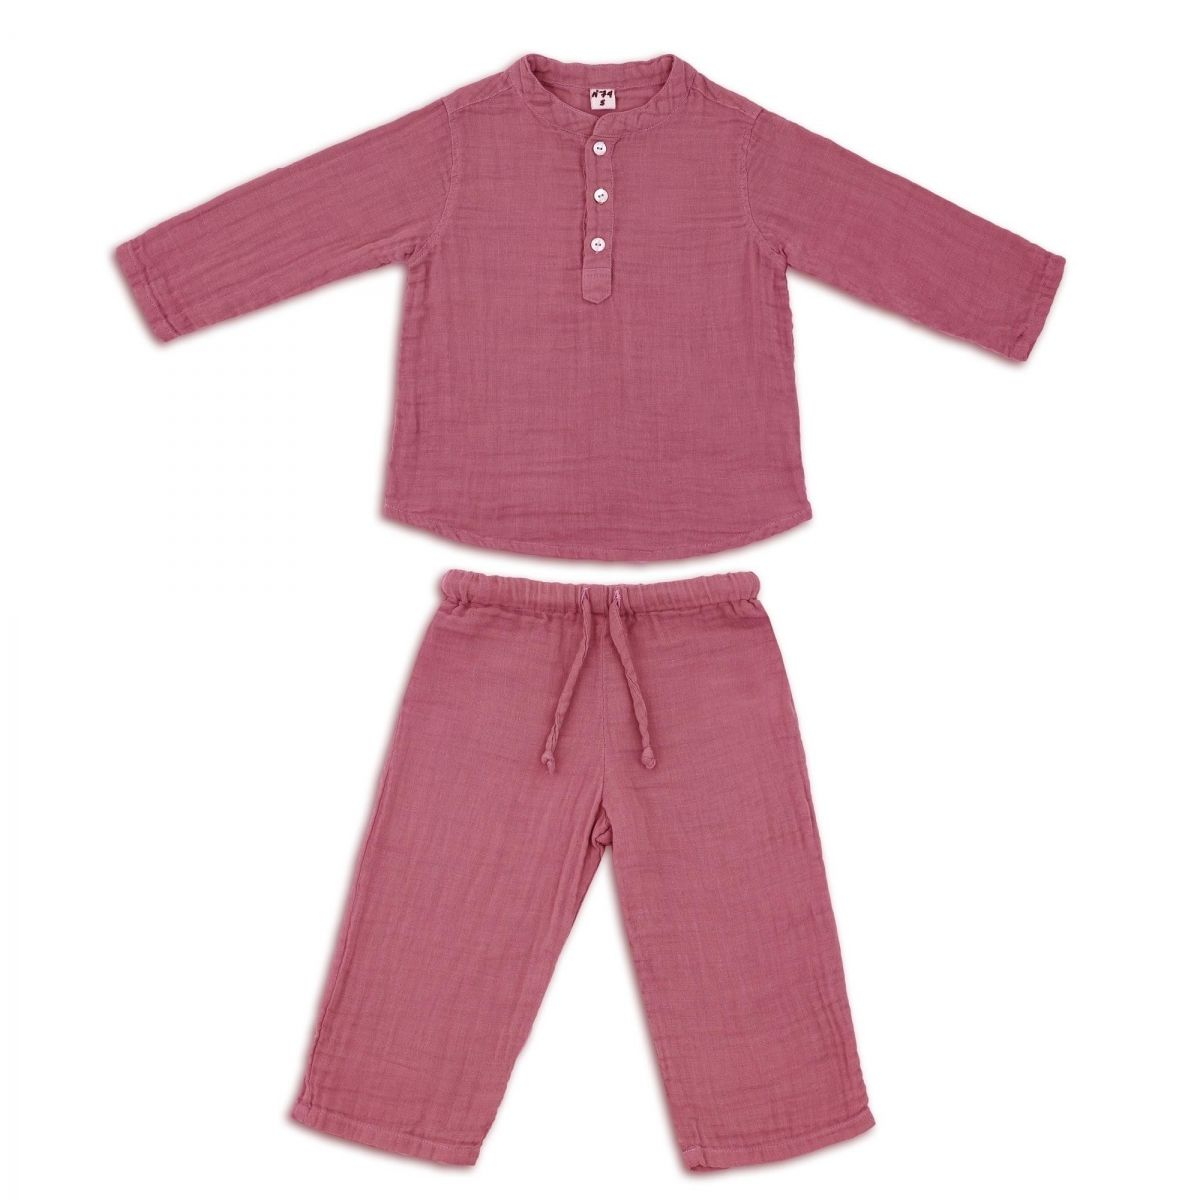 Numero 74 Suit Dan shirt & pants baobab rose